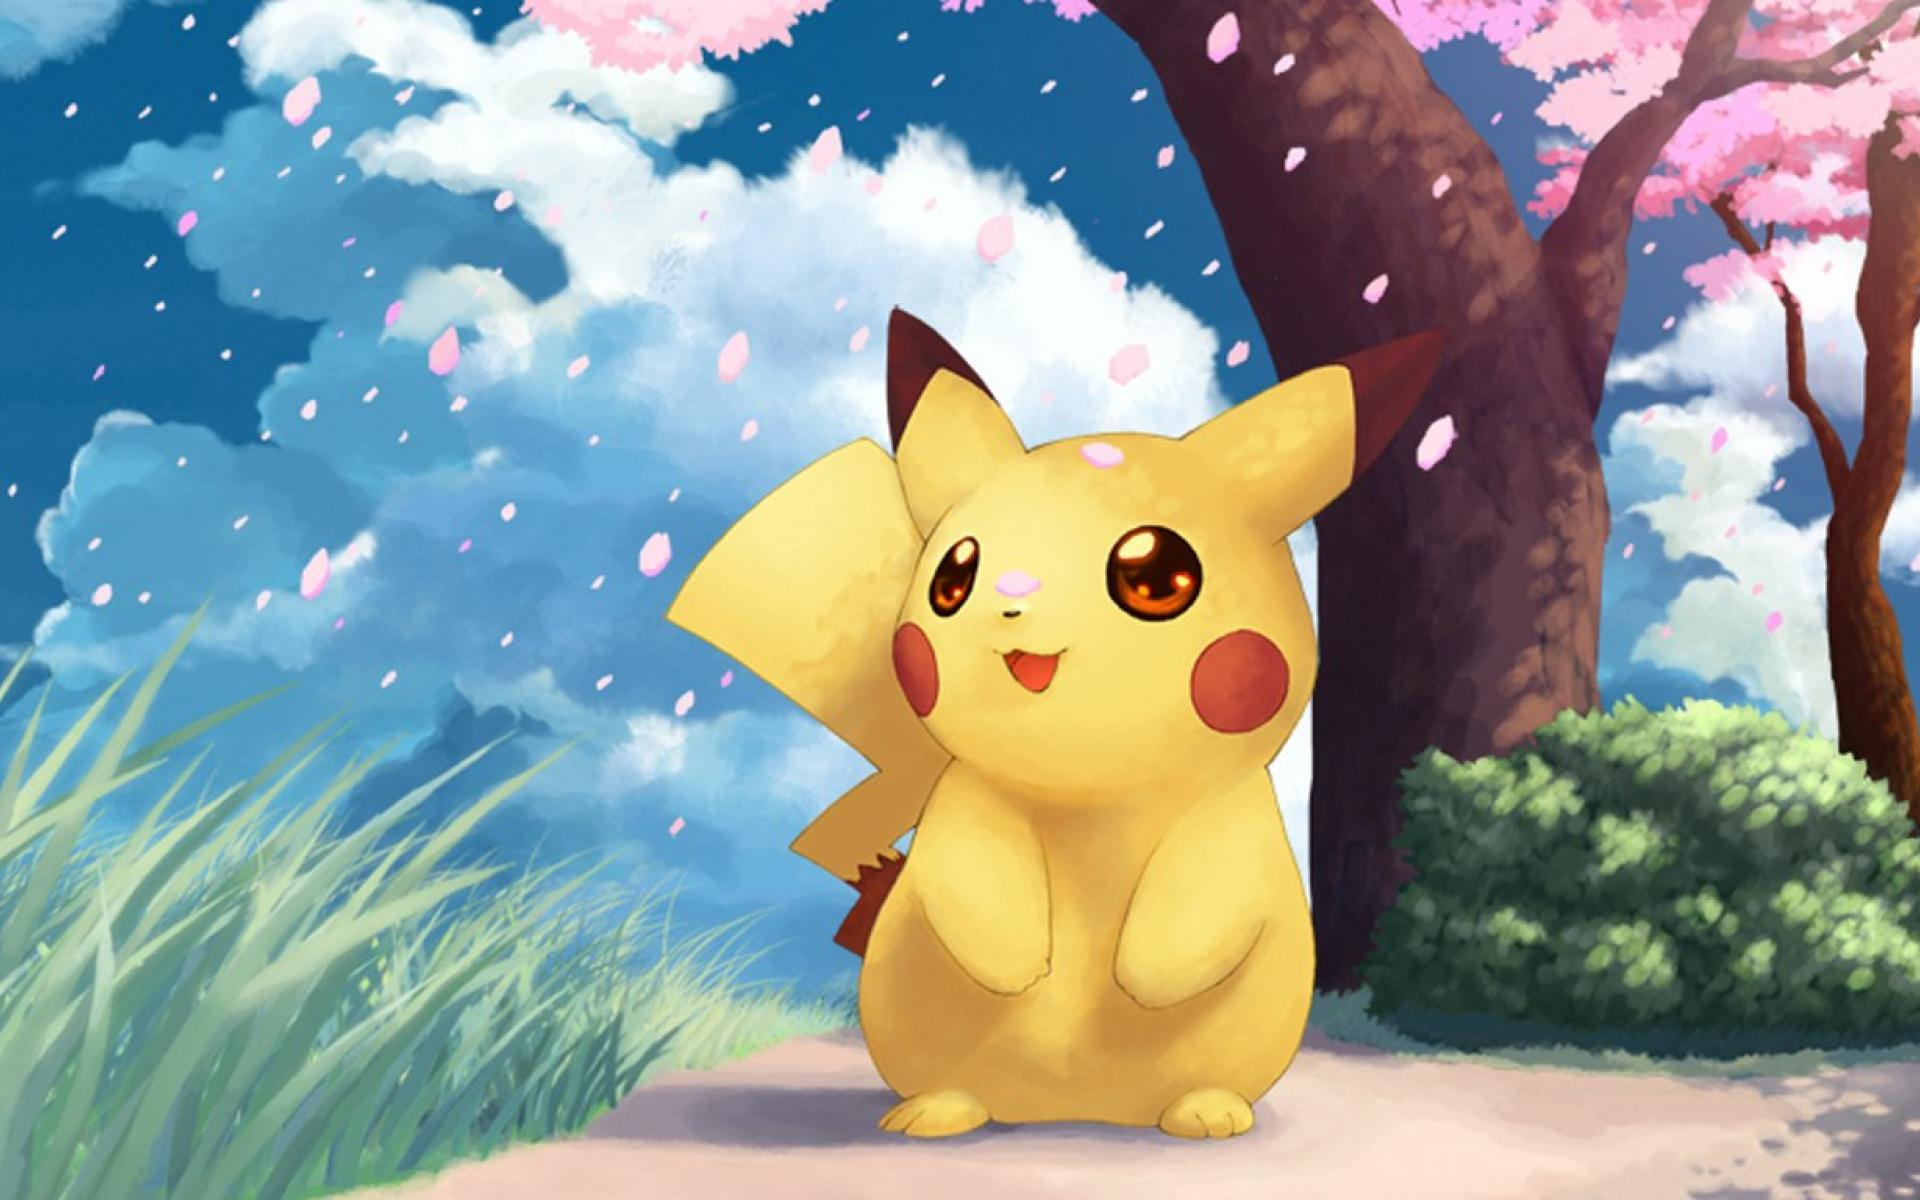 Wallpapers For \u0026gt; Pikachu Wallpapers Hd